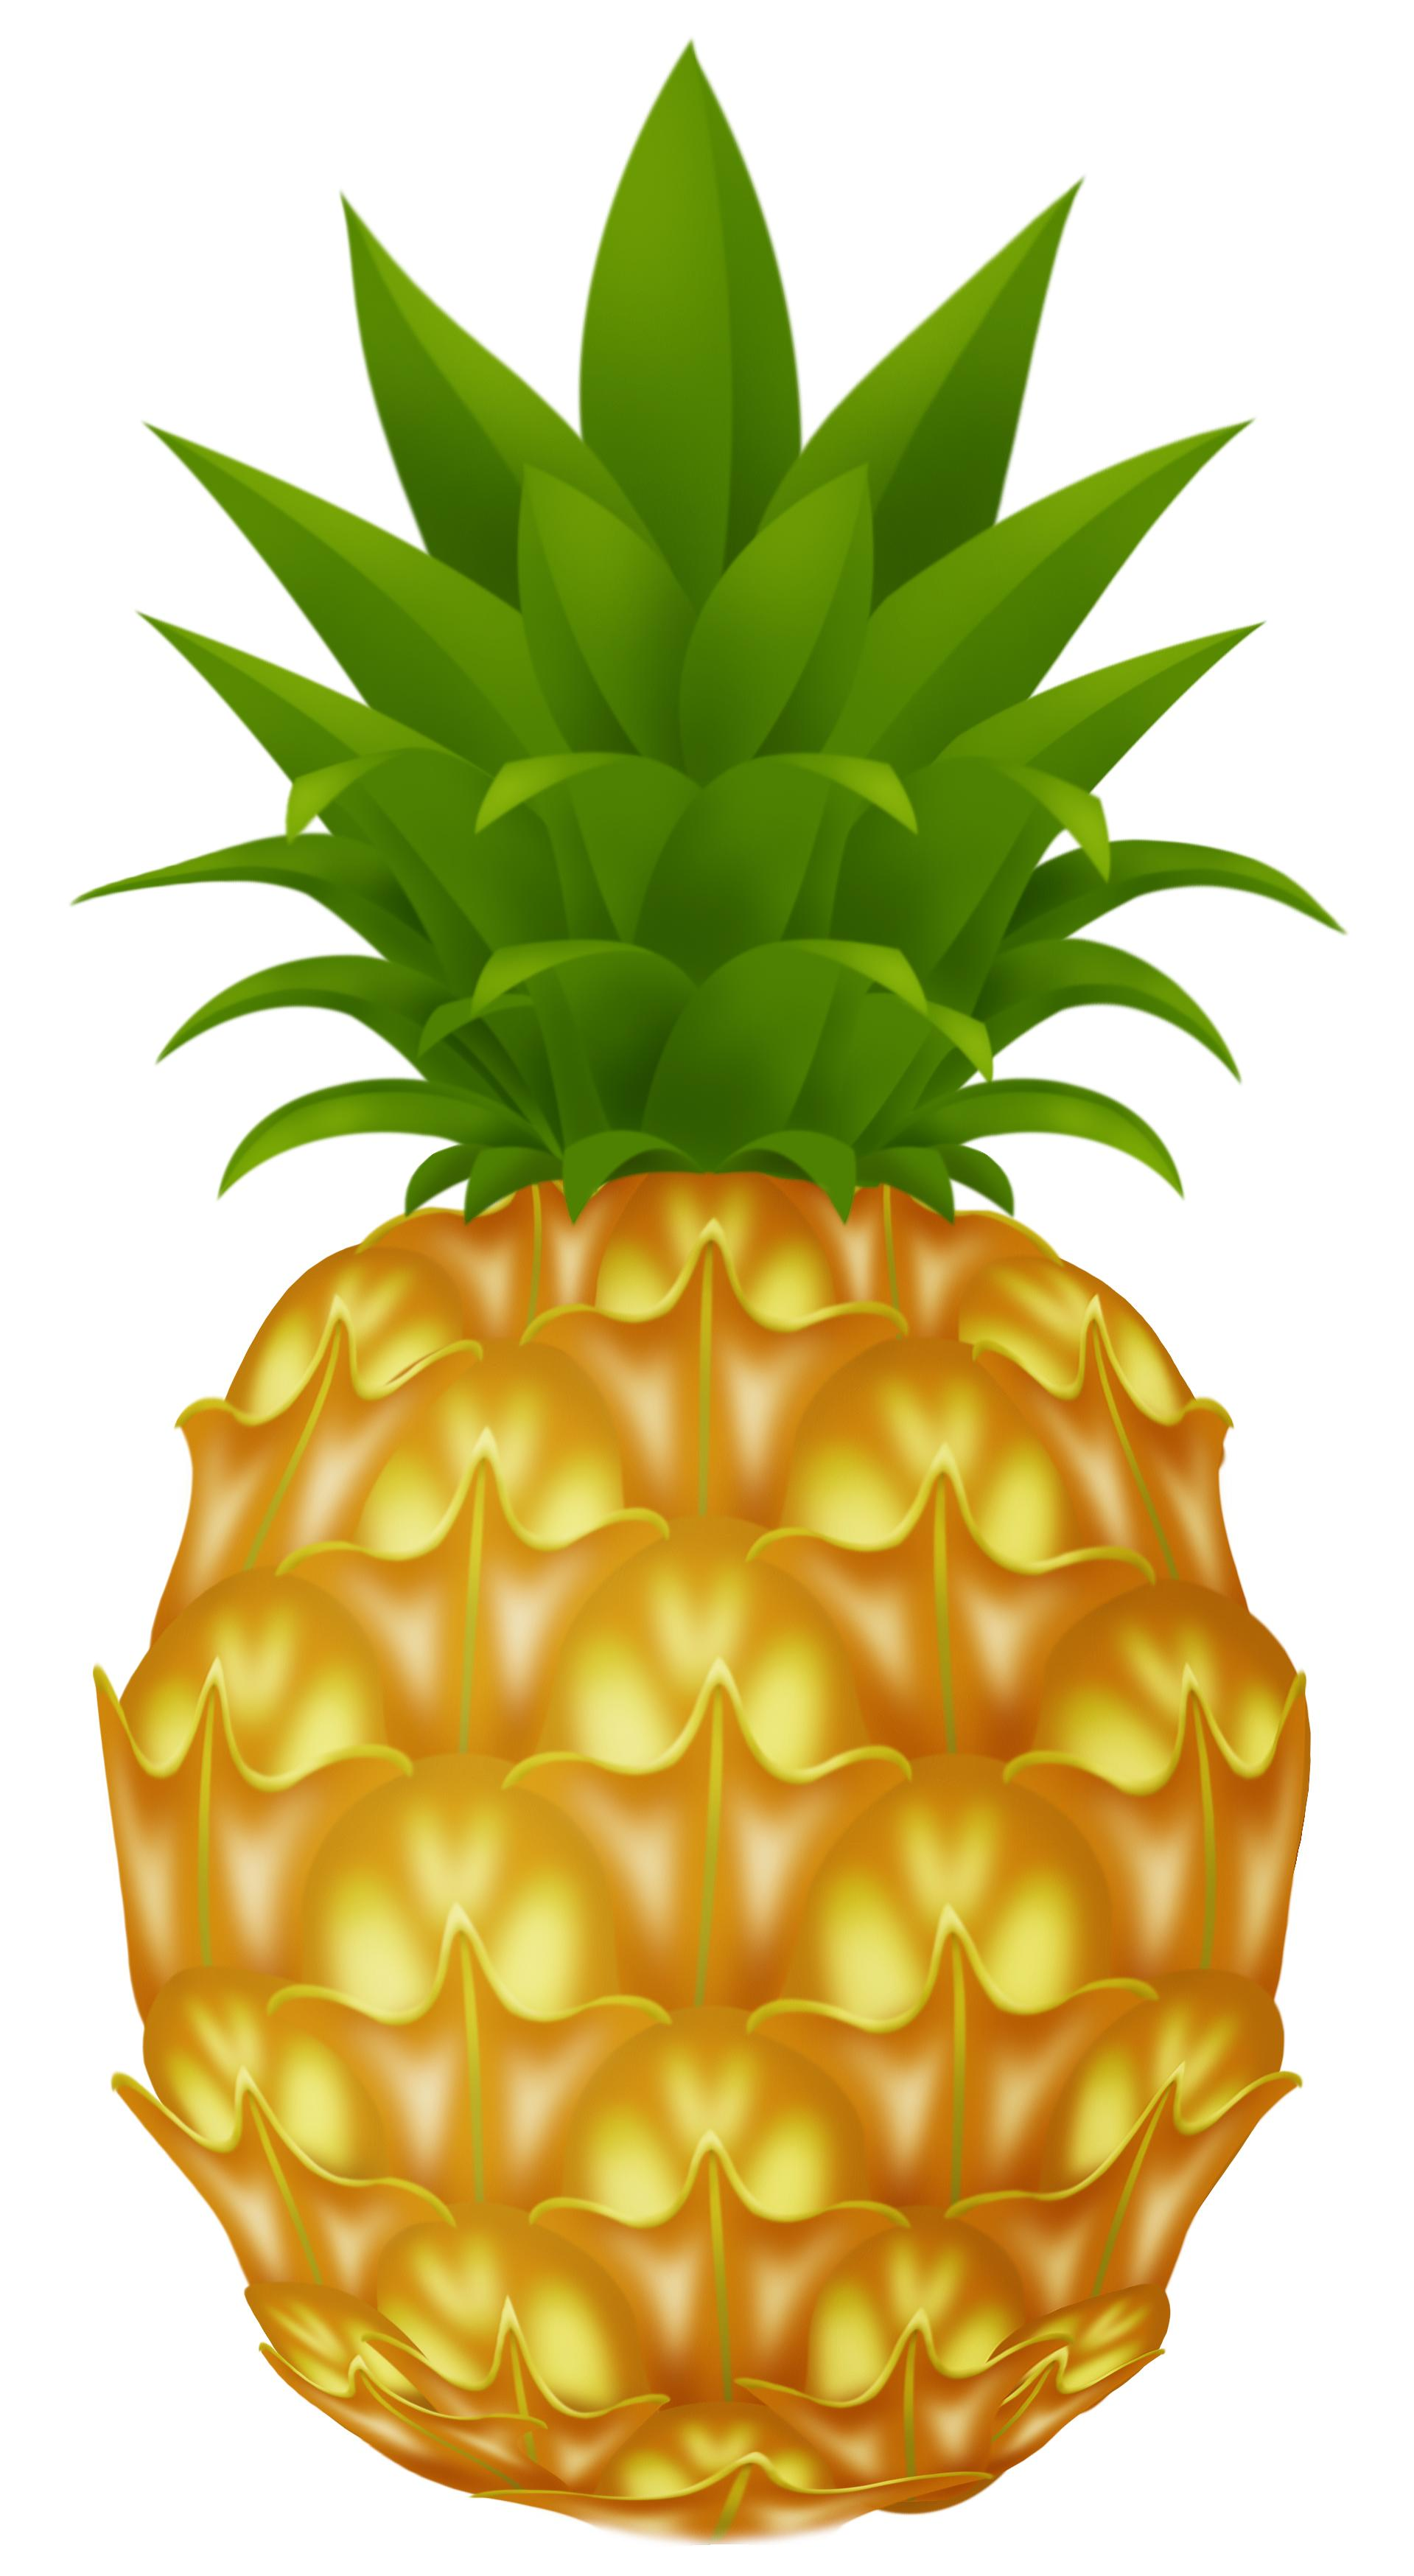 Pineapple PNG image free pictures download